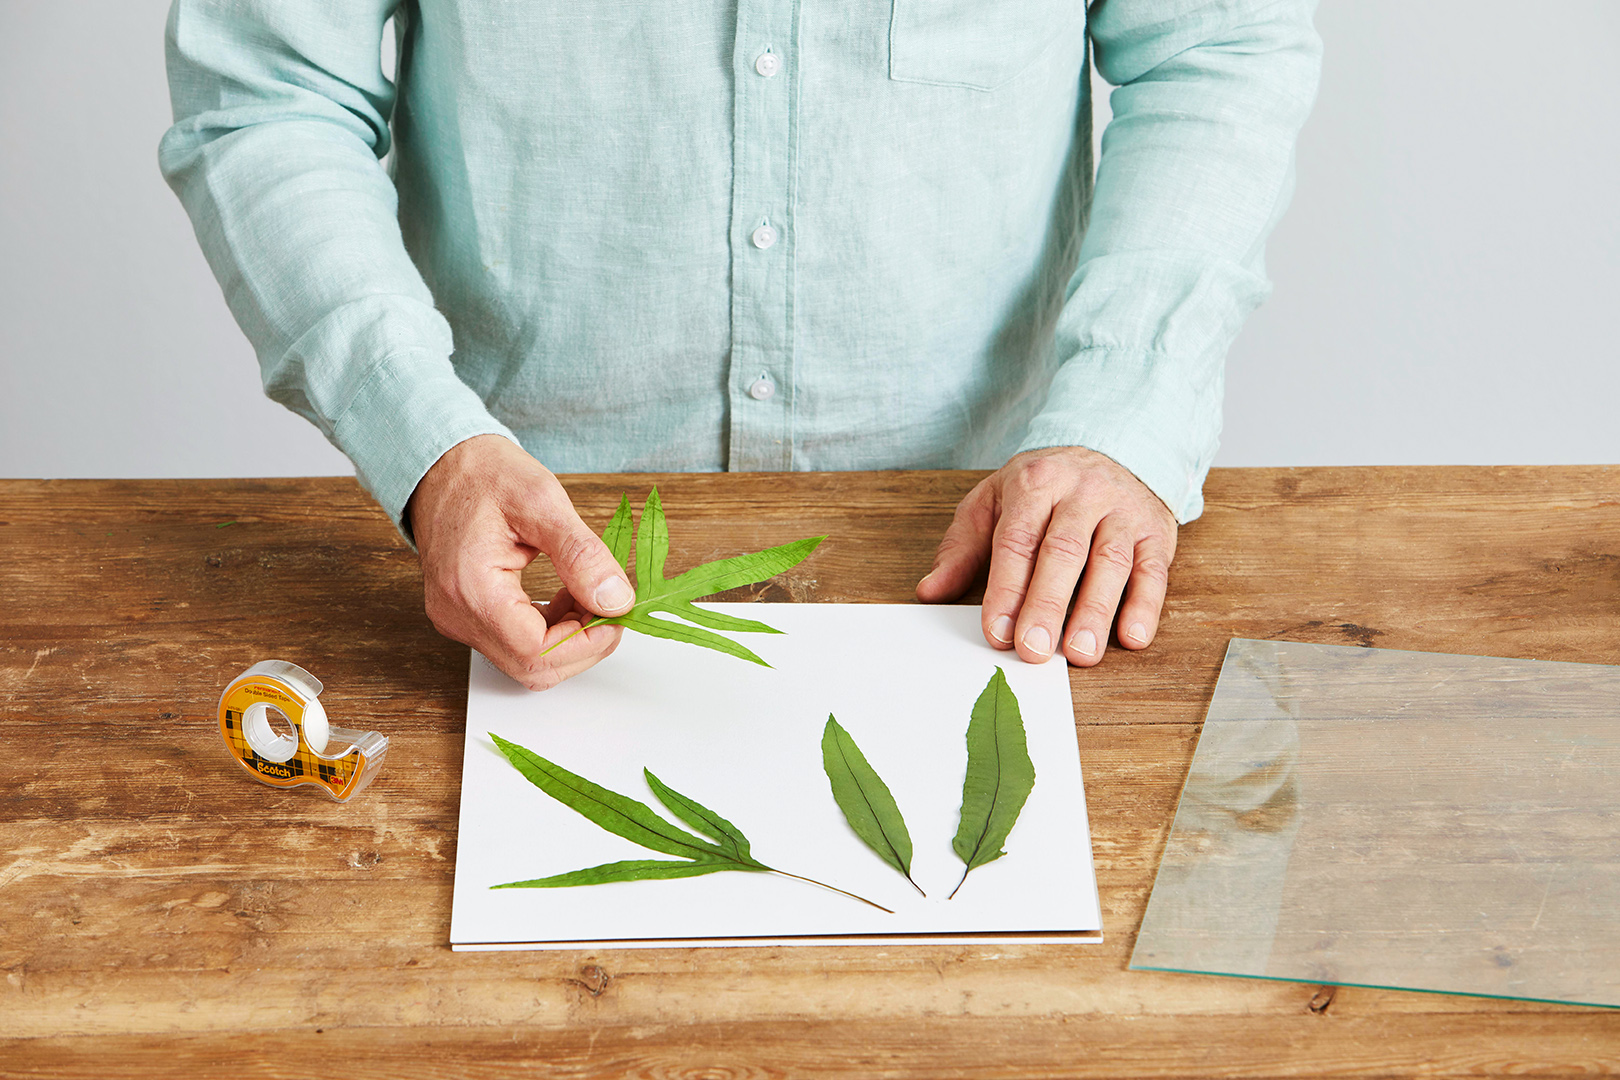 tape plant clipping on white paper for framing